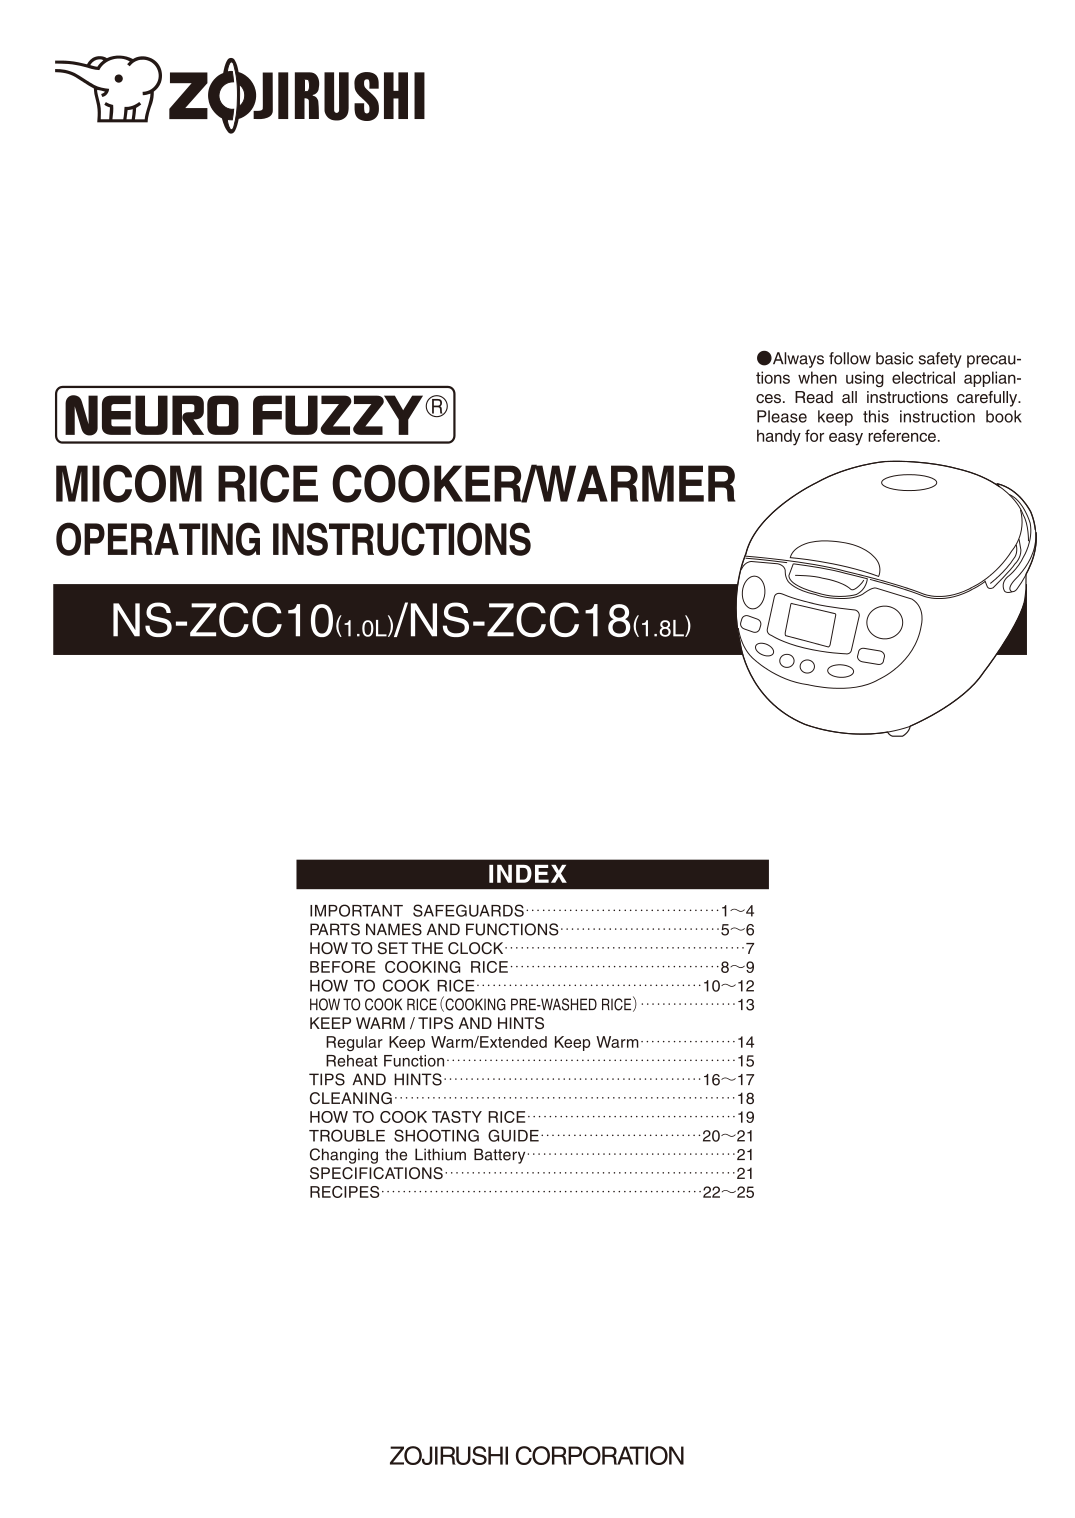 Neuro fuzzy® rice cooker & warmer ns-zcc10/18 | zojirushi. Com.